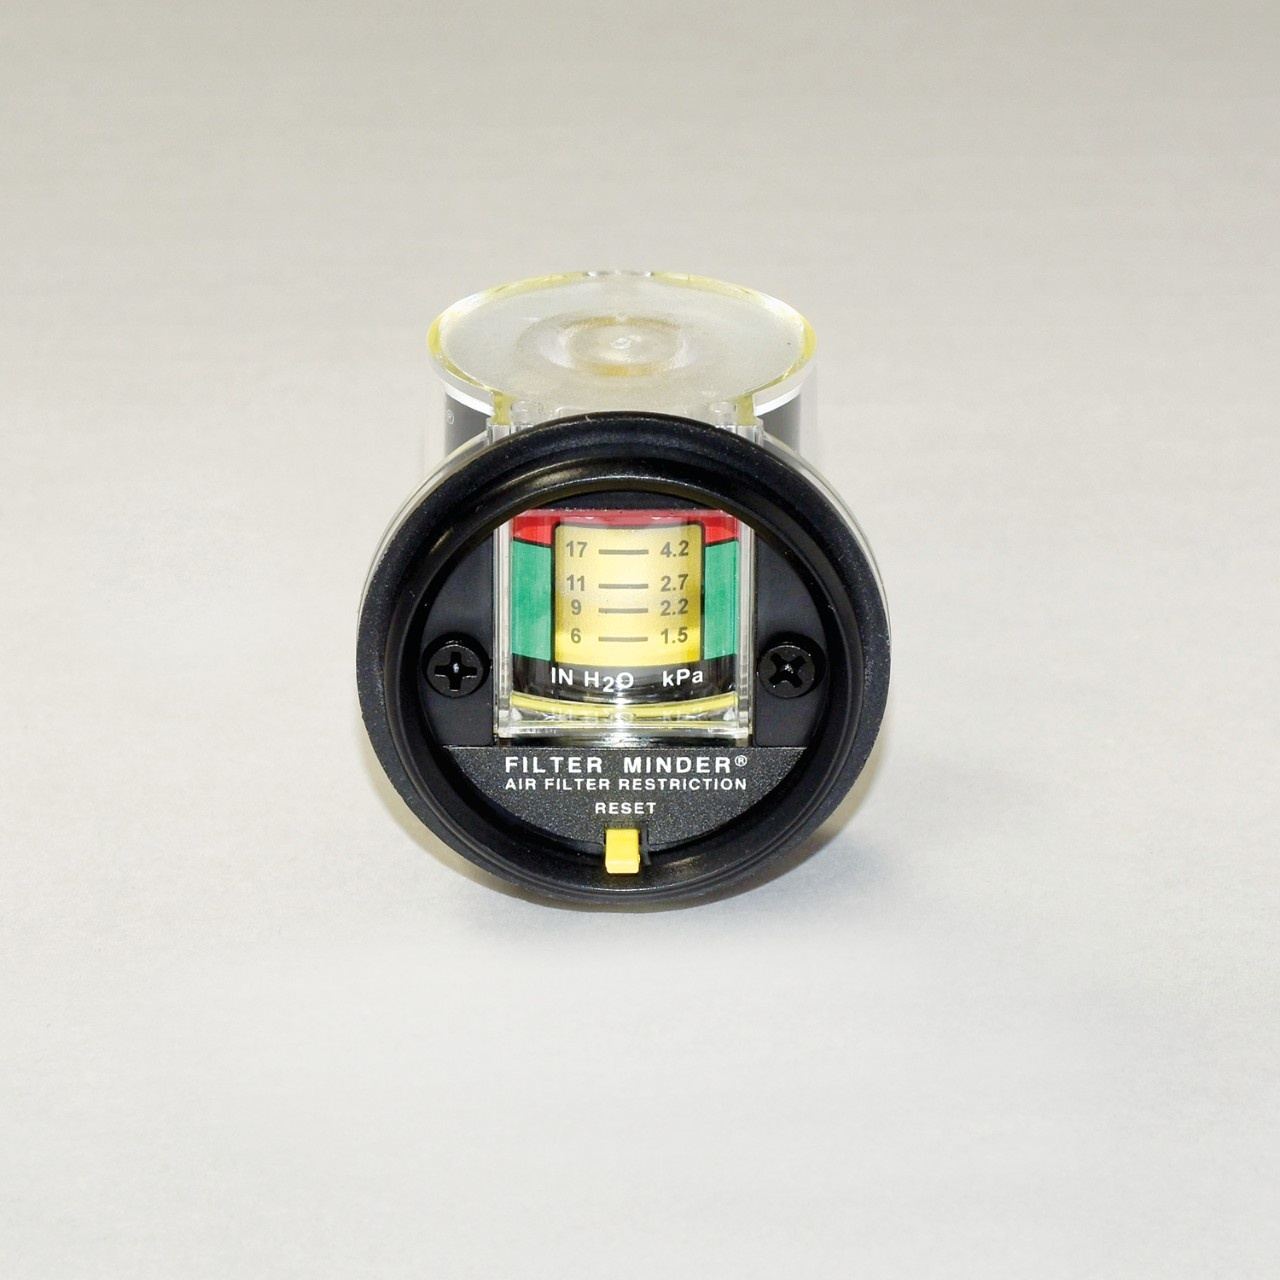 168501-00220_Donaldson Air Filter Resistance Indicator 20 in limit